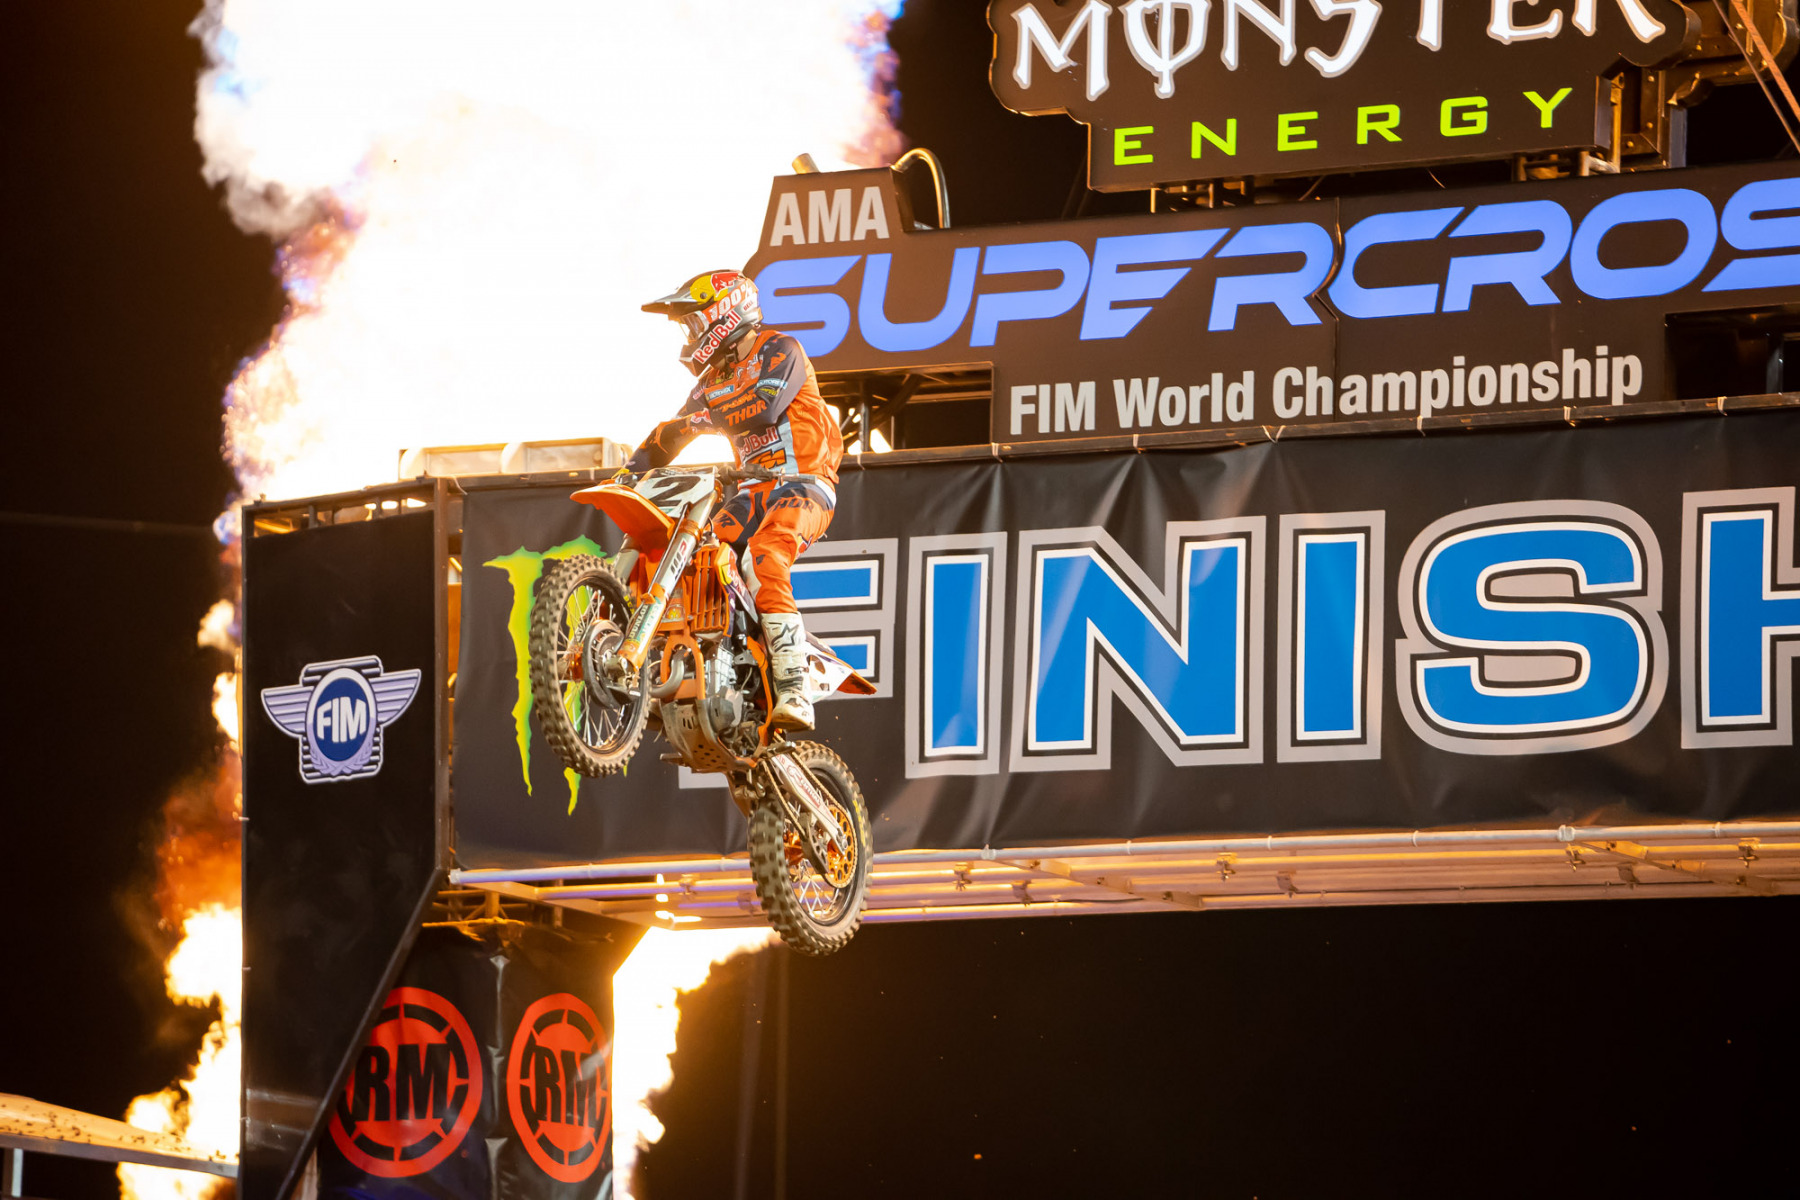 2021-ORLANDO-TWO-SUPERCROSS_KICKSTART_1562